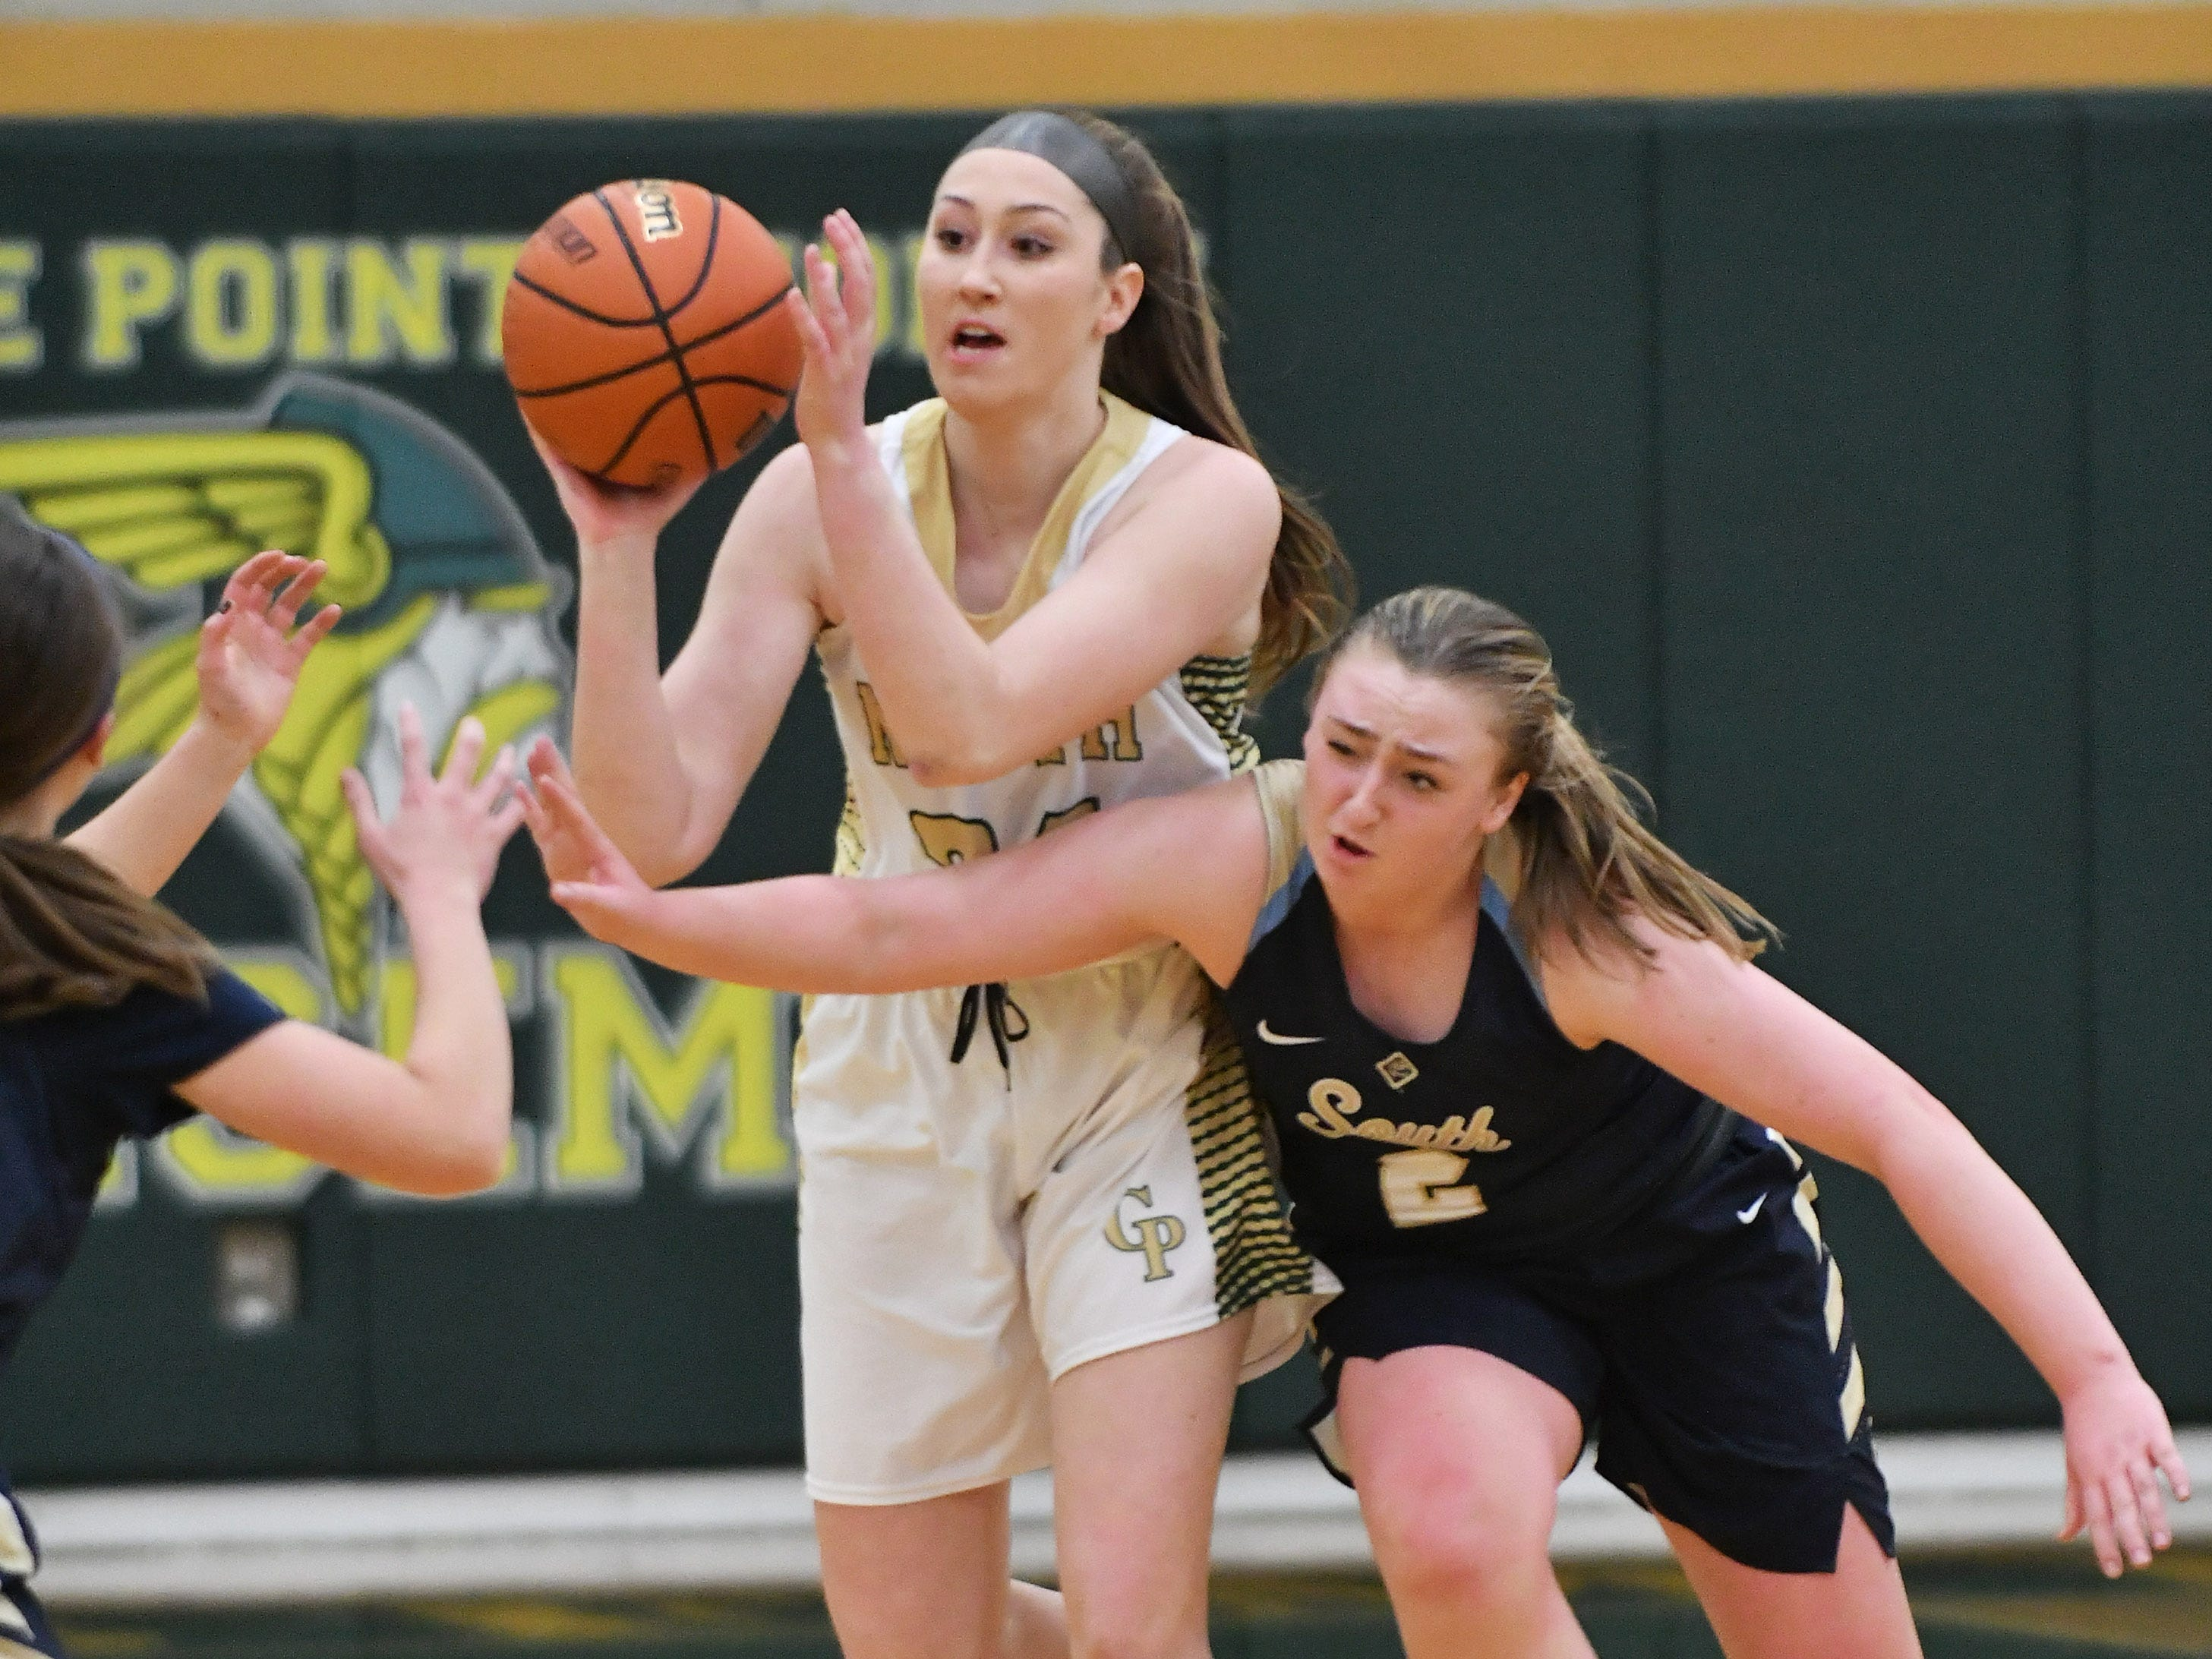 Grosse Pointe South's Alexa Downey (2) fouls Grosse Pointe North's Regan Sliwinski in the second quarter.